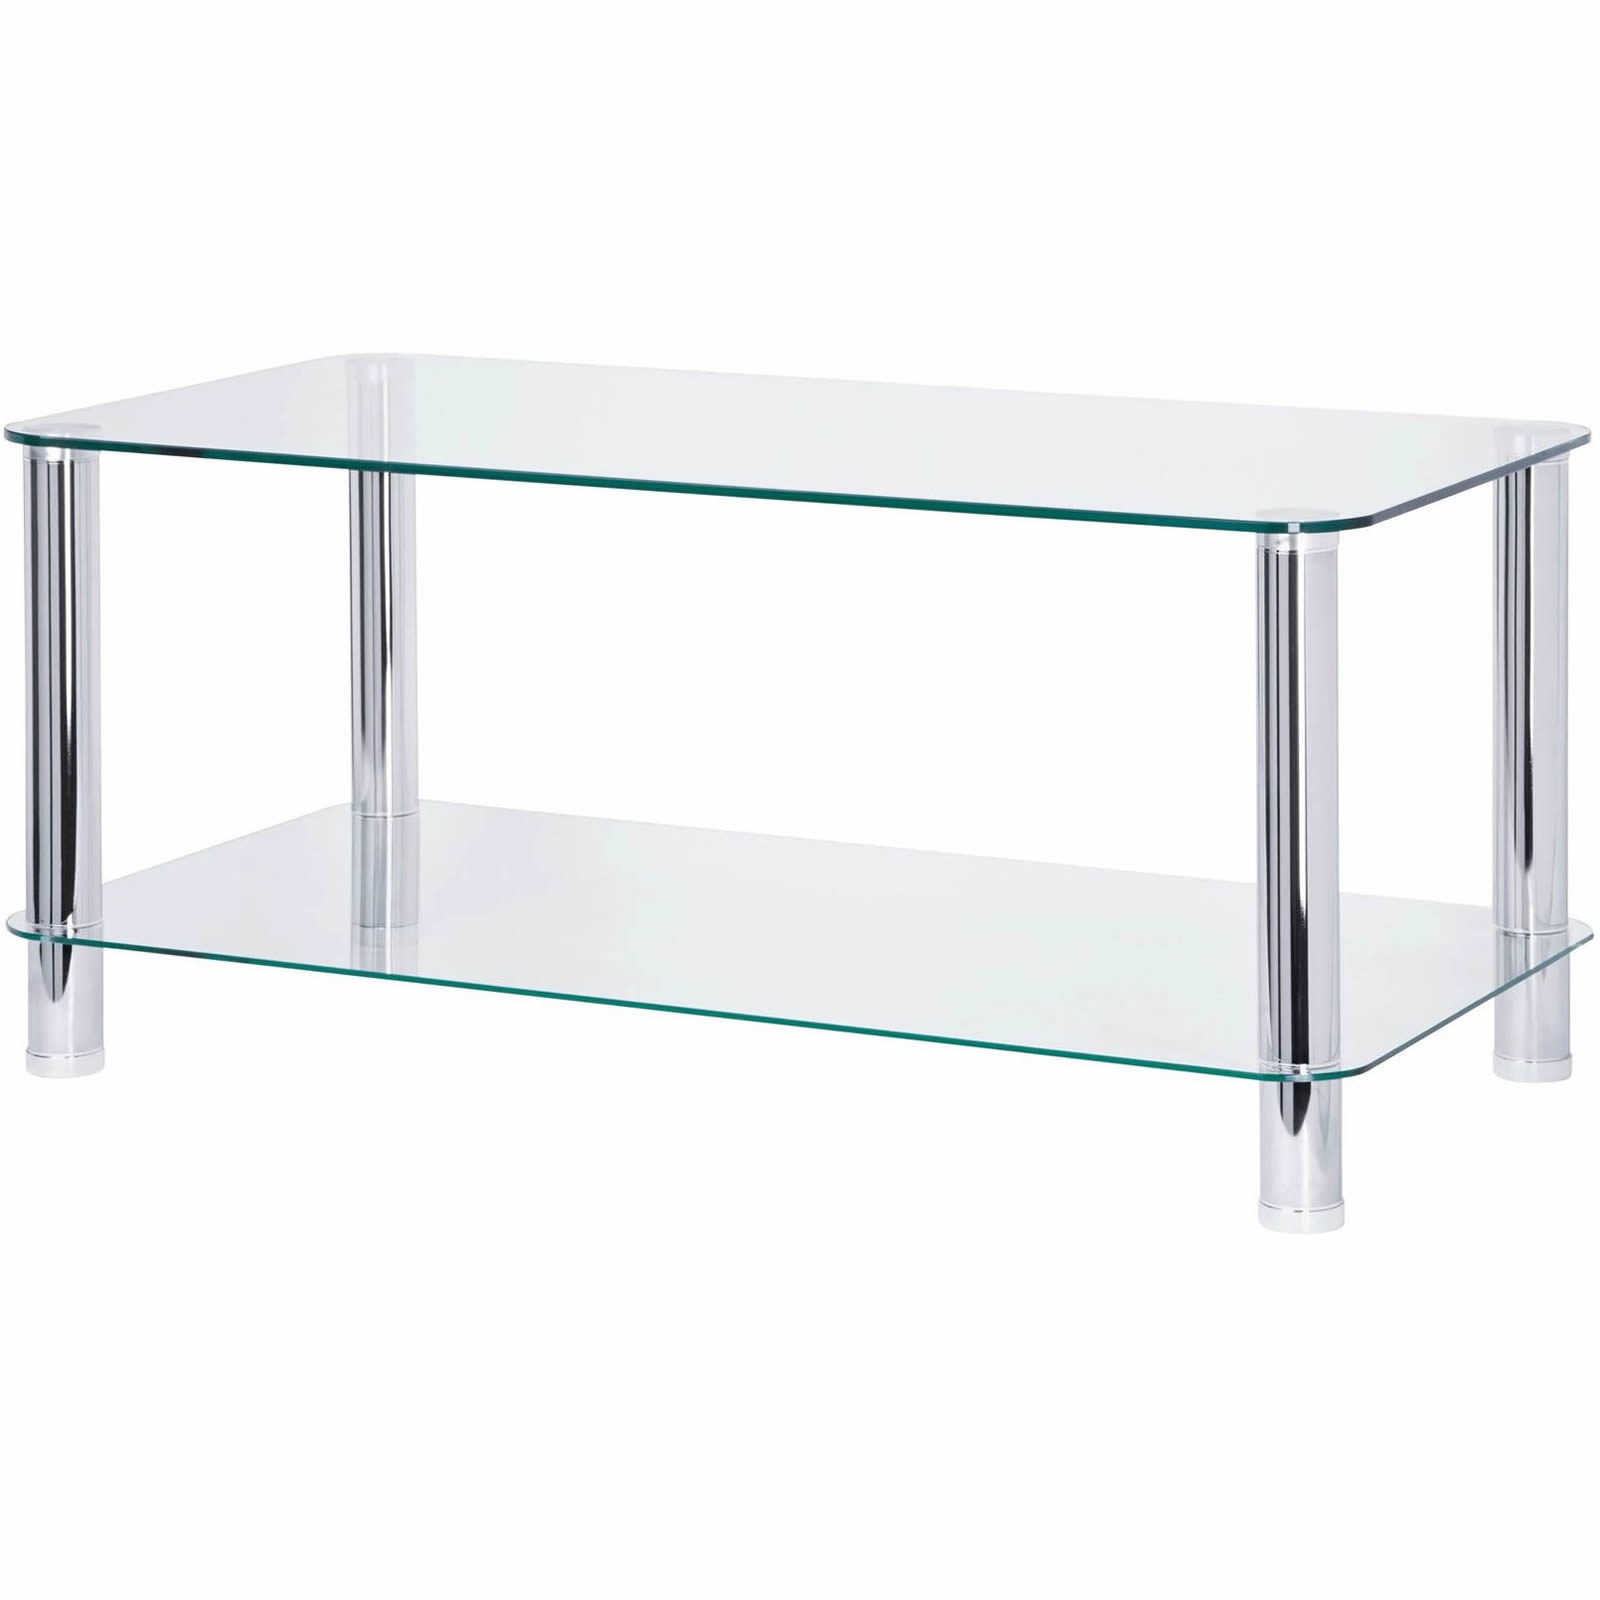 Glass Coffee Table For Sale On Ebay: Glass Side Tables